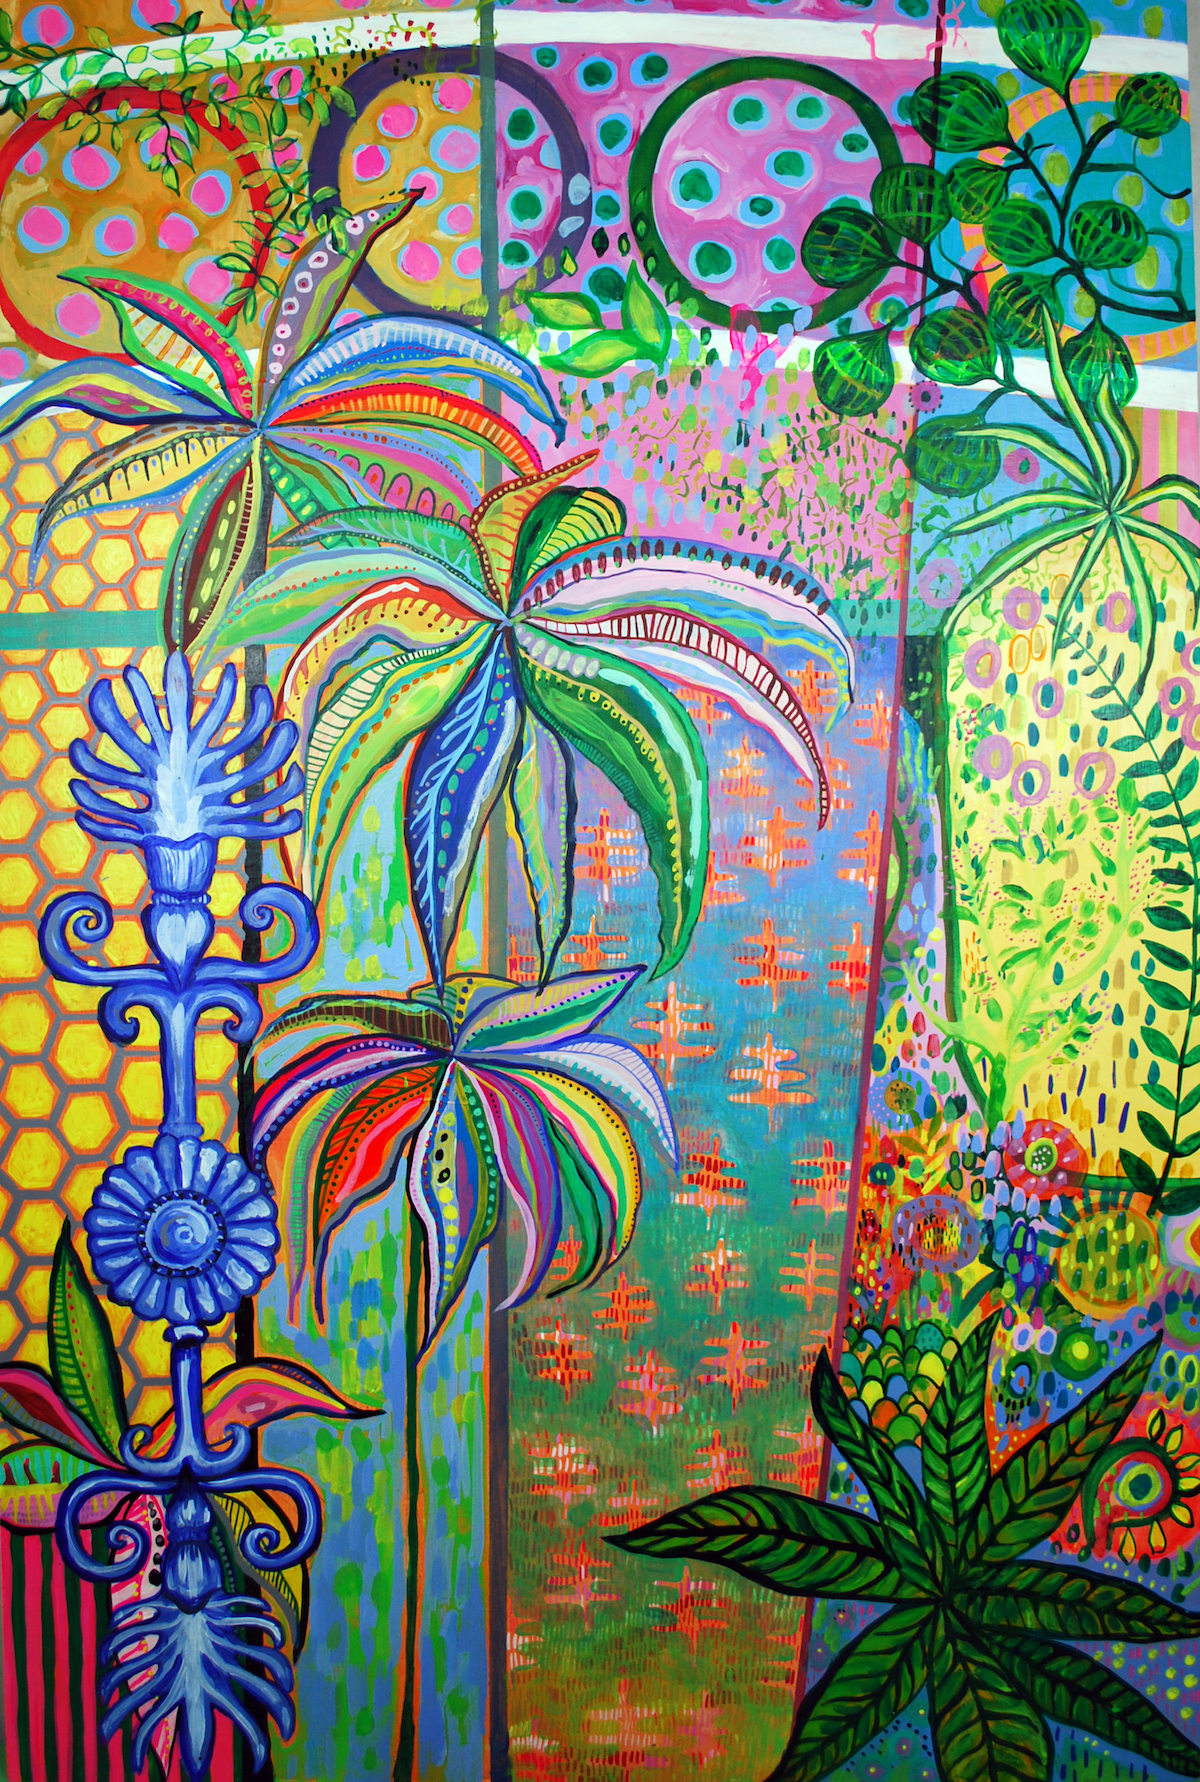 Herbaceous Hot House 2 (49.5 H x 33.3 W x 2 in) Acylic on wood panel .jpg